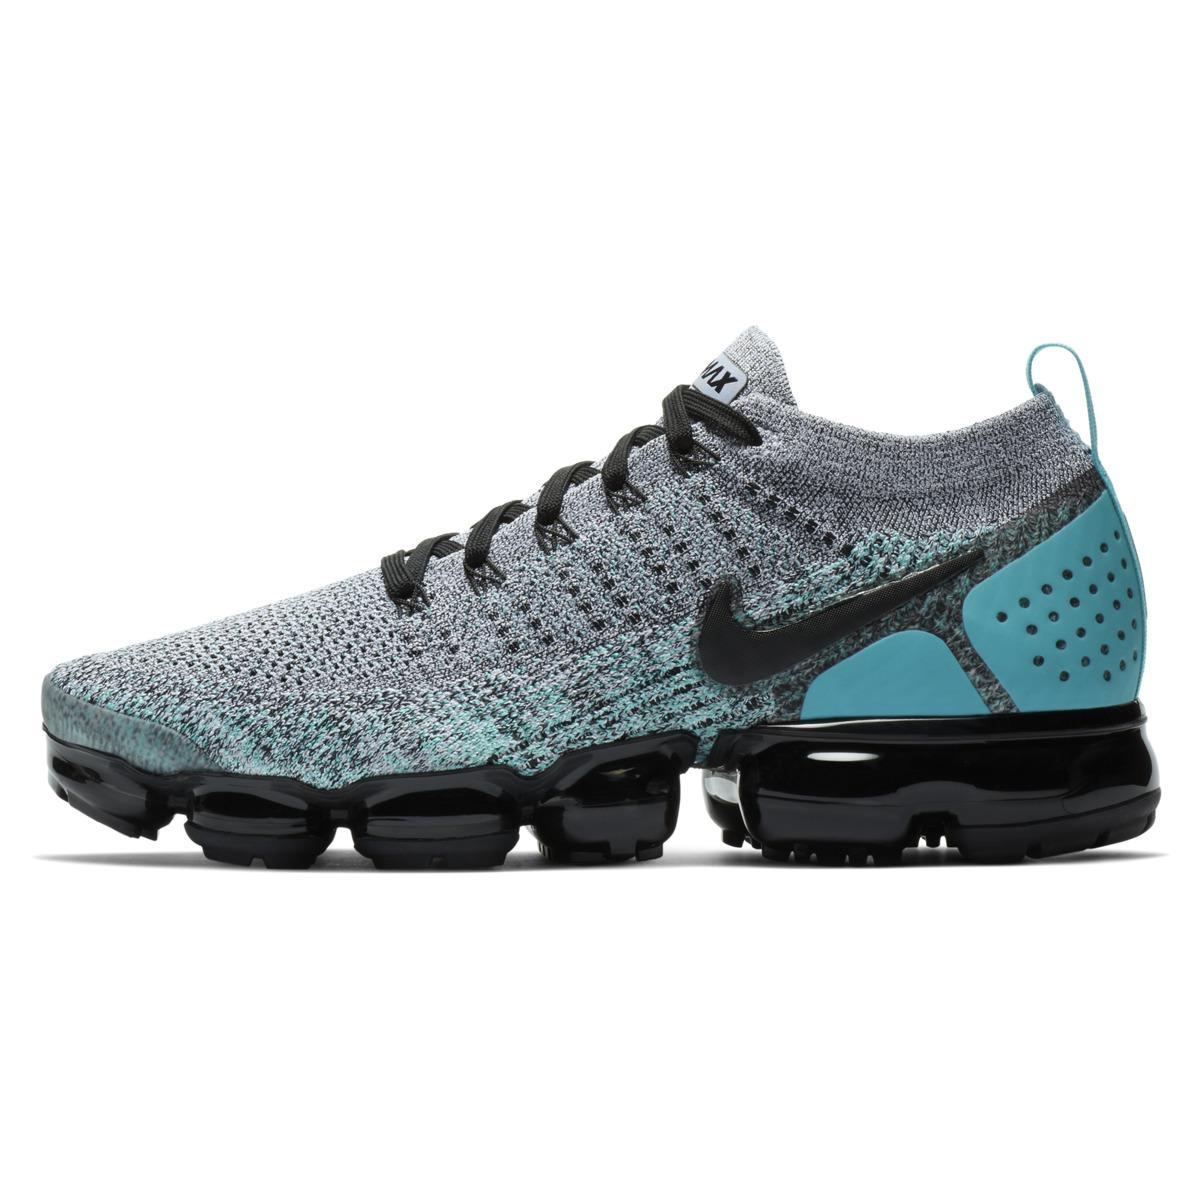 separation shoes f4f82 31571 Nike - Multicolor Air Vapormax Flyknit 2 Men s Running Shoe for Men - Lyst